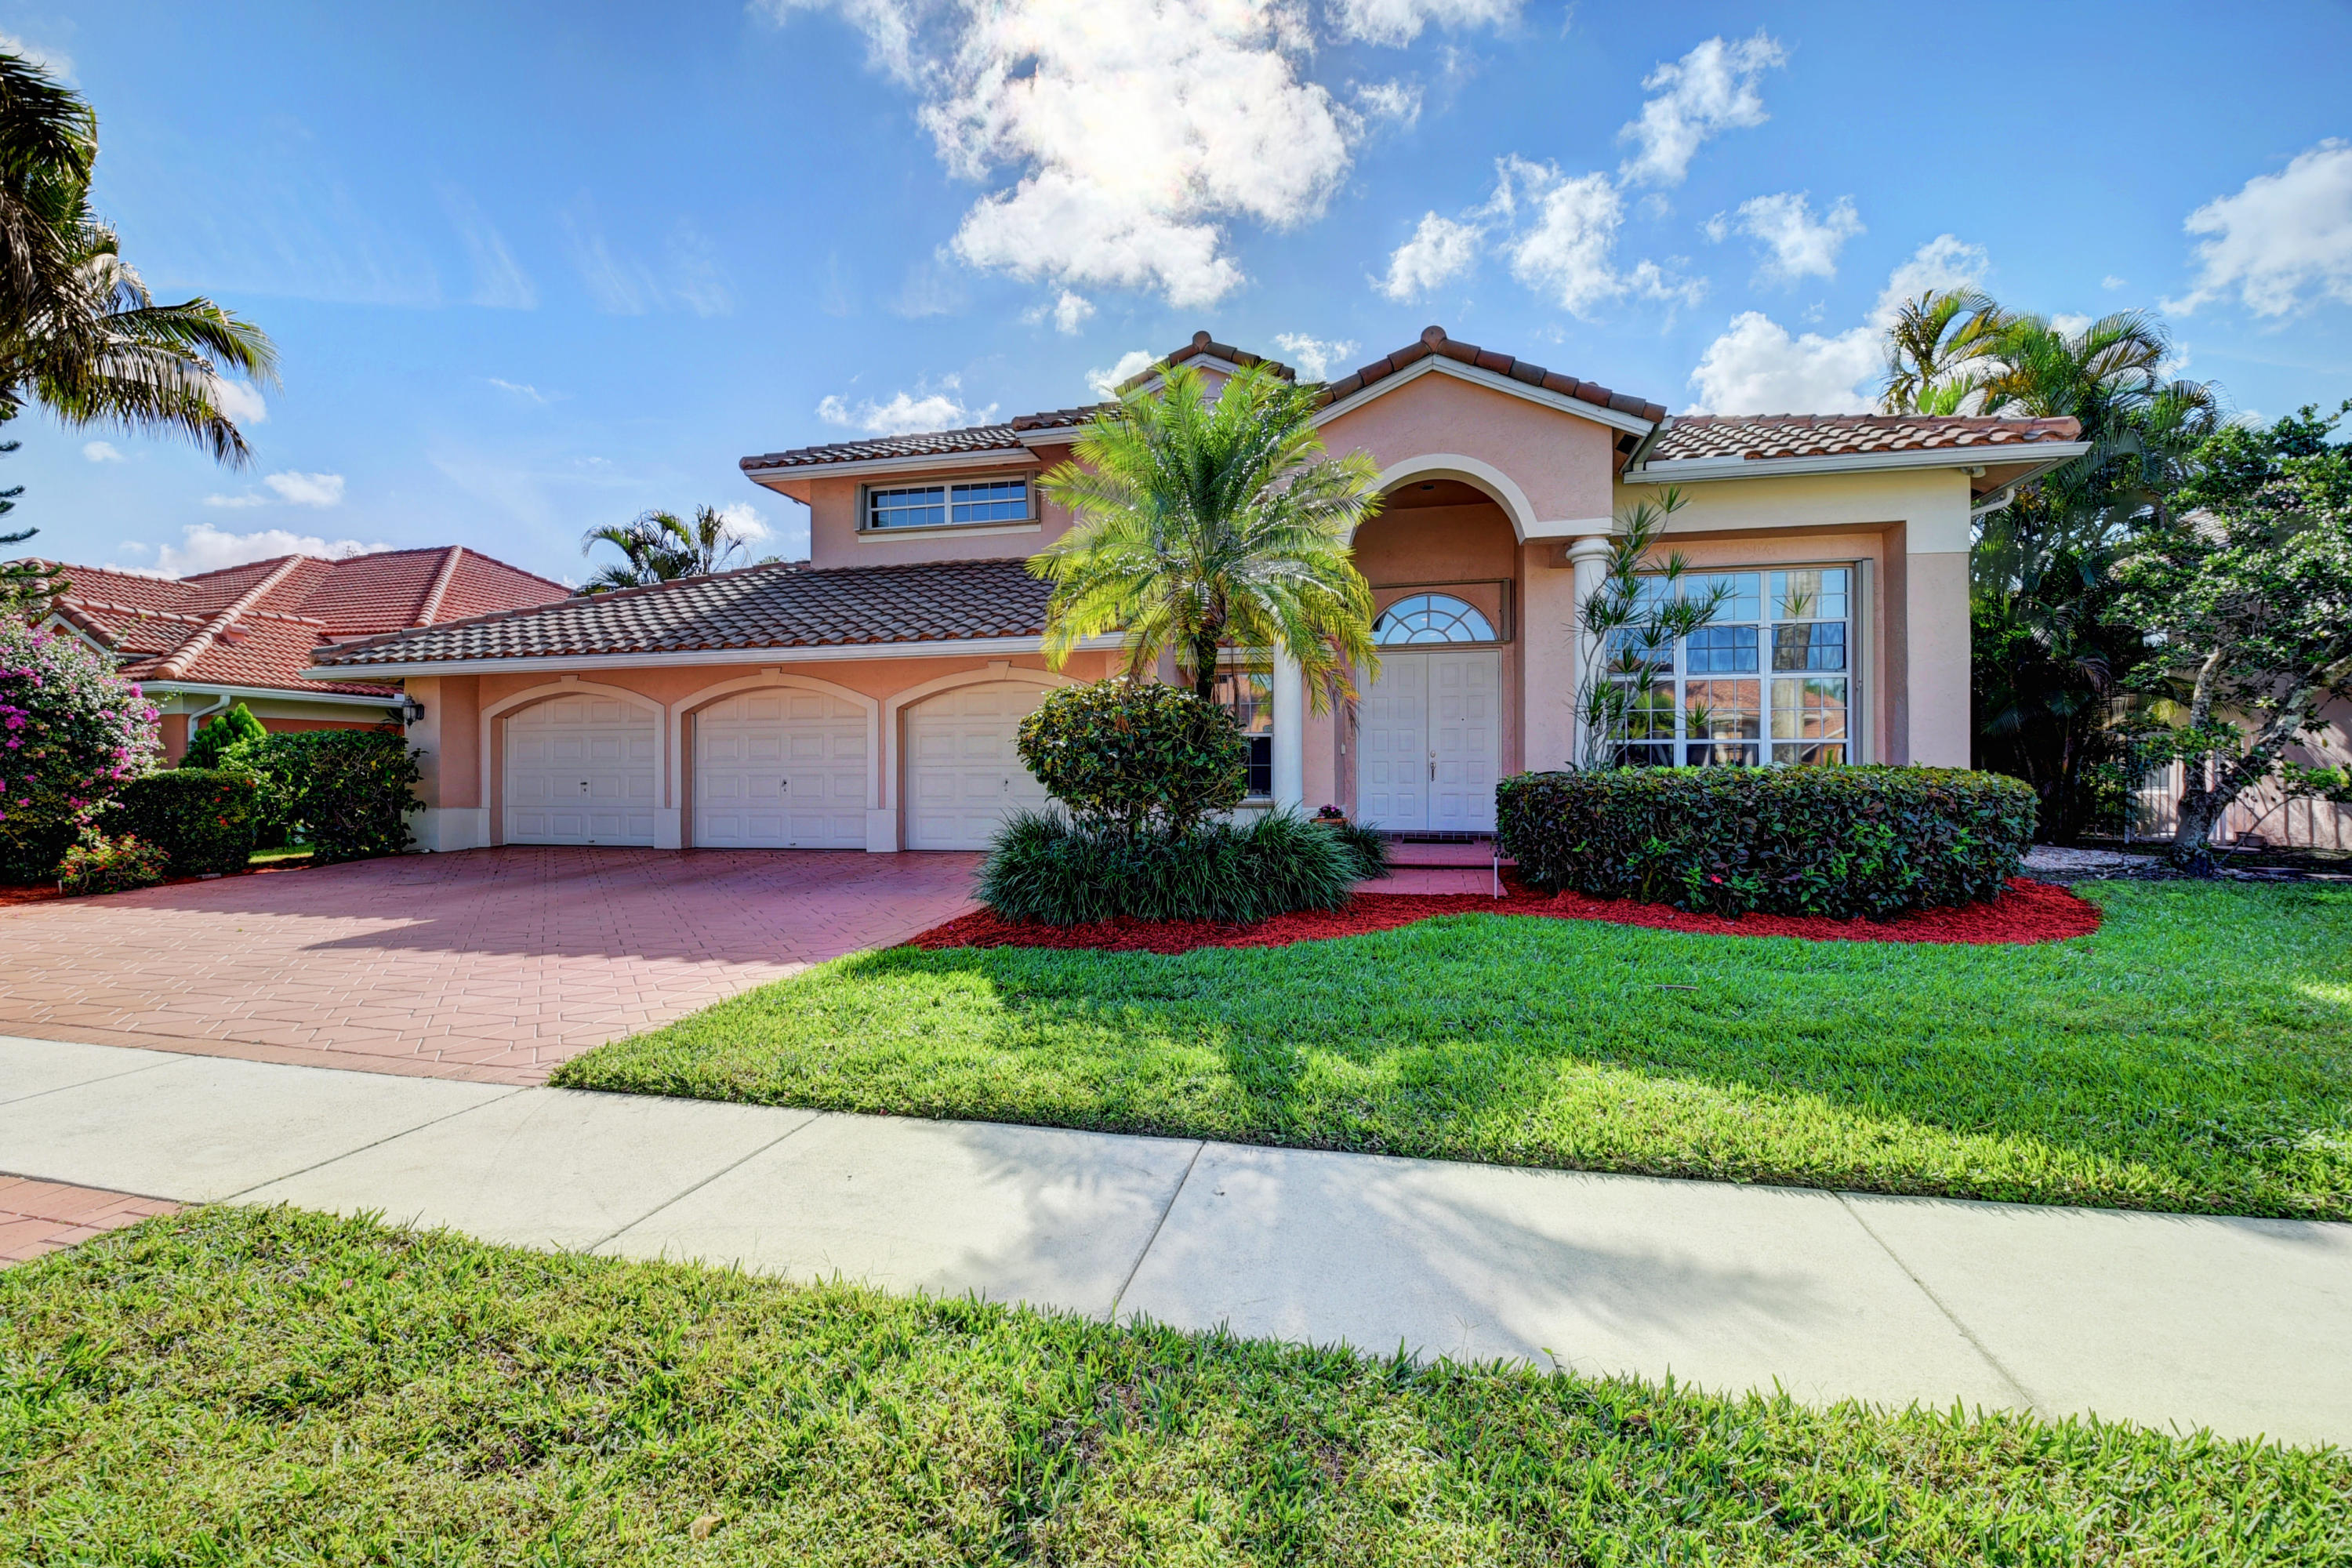 Photo of 19102 Cloister Lake Lane, Boca Raton, FL 33498